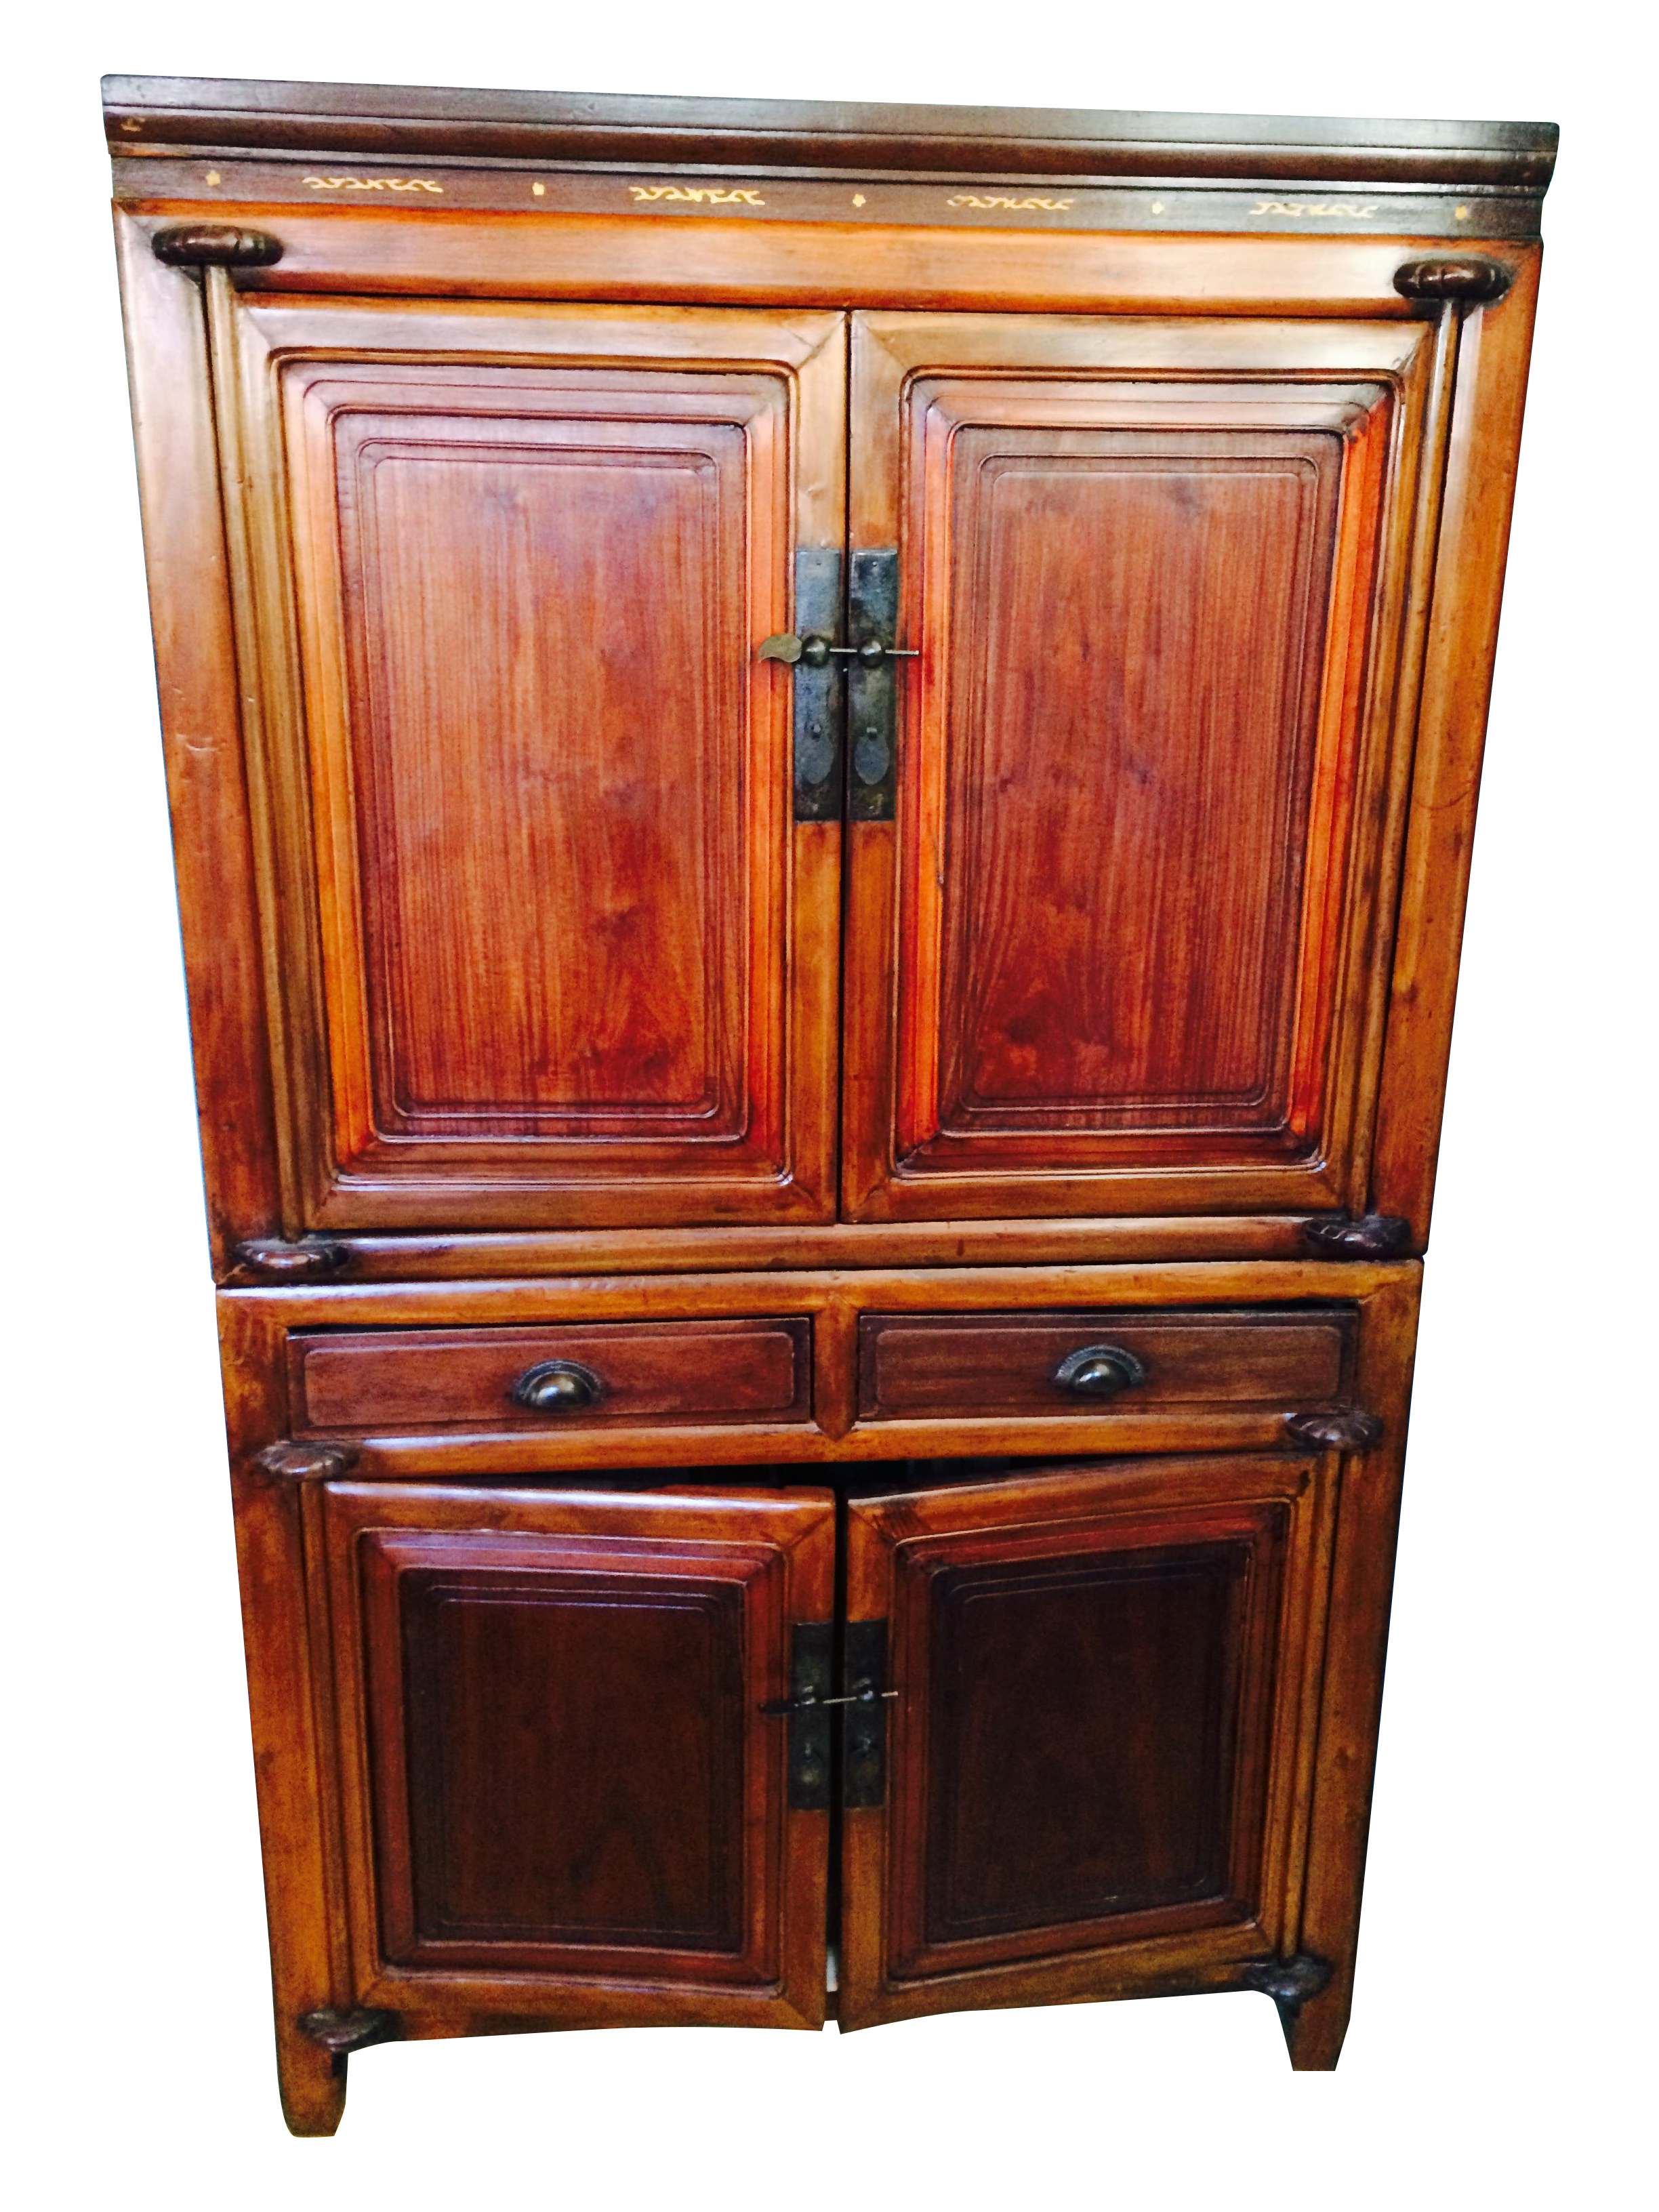 Antique Chinese Chest Cabinet Armoire Elm Inlay on Chairish.com ...